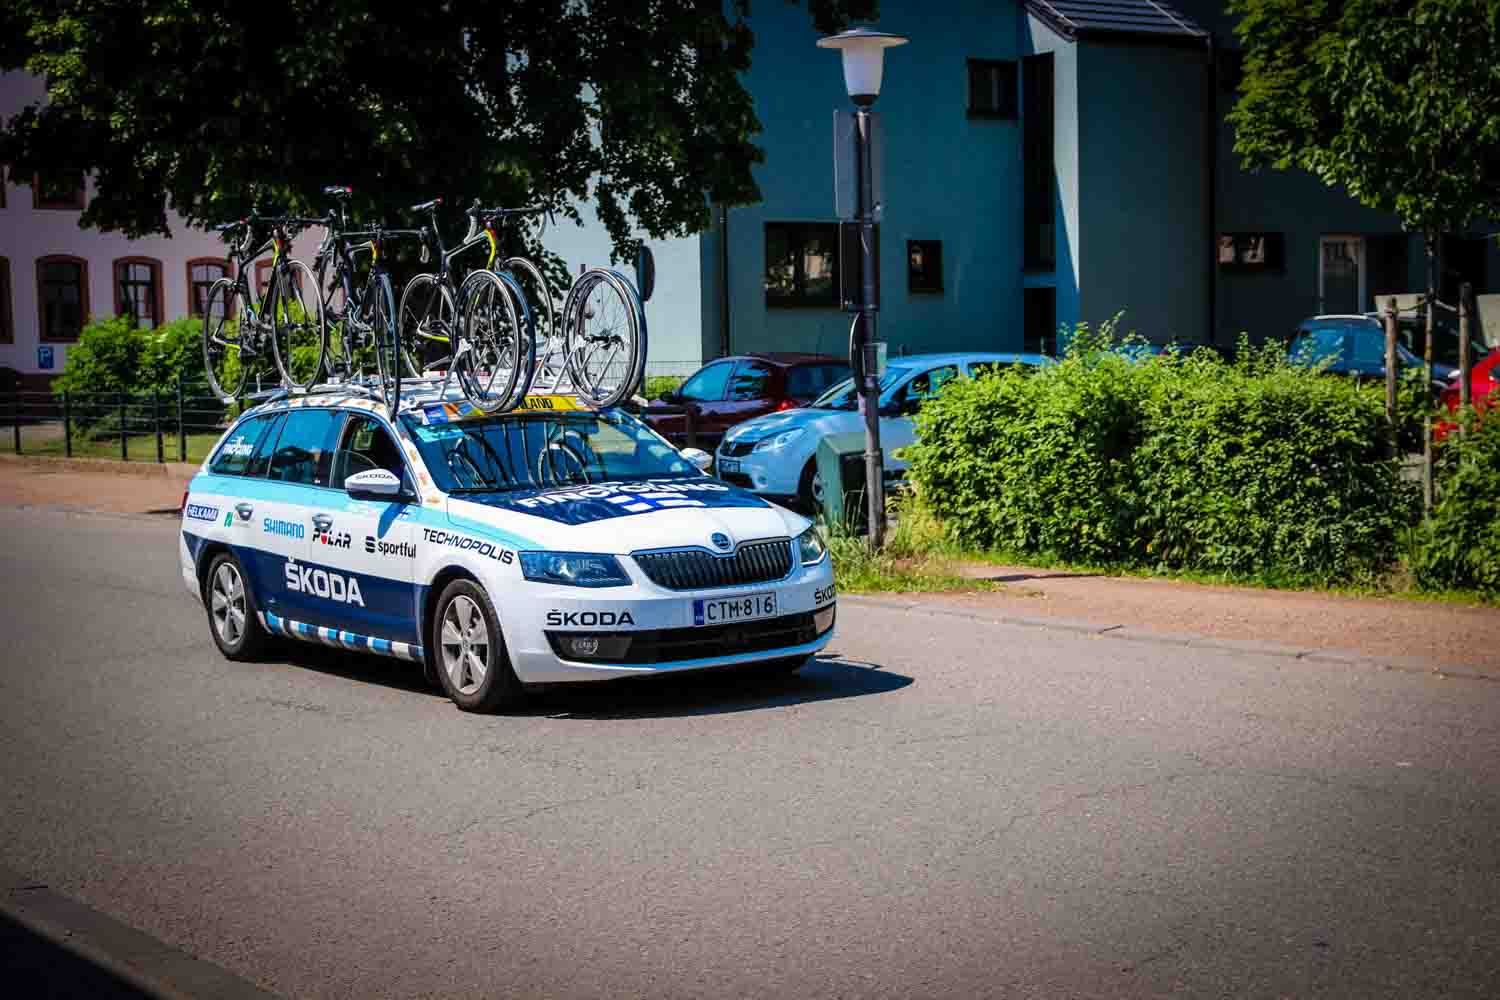 Toomas and Pera following the peloton in the team car